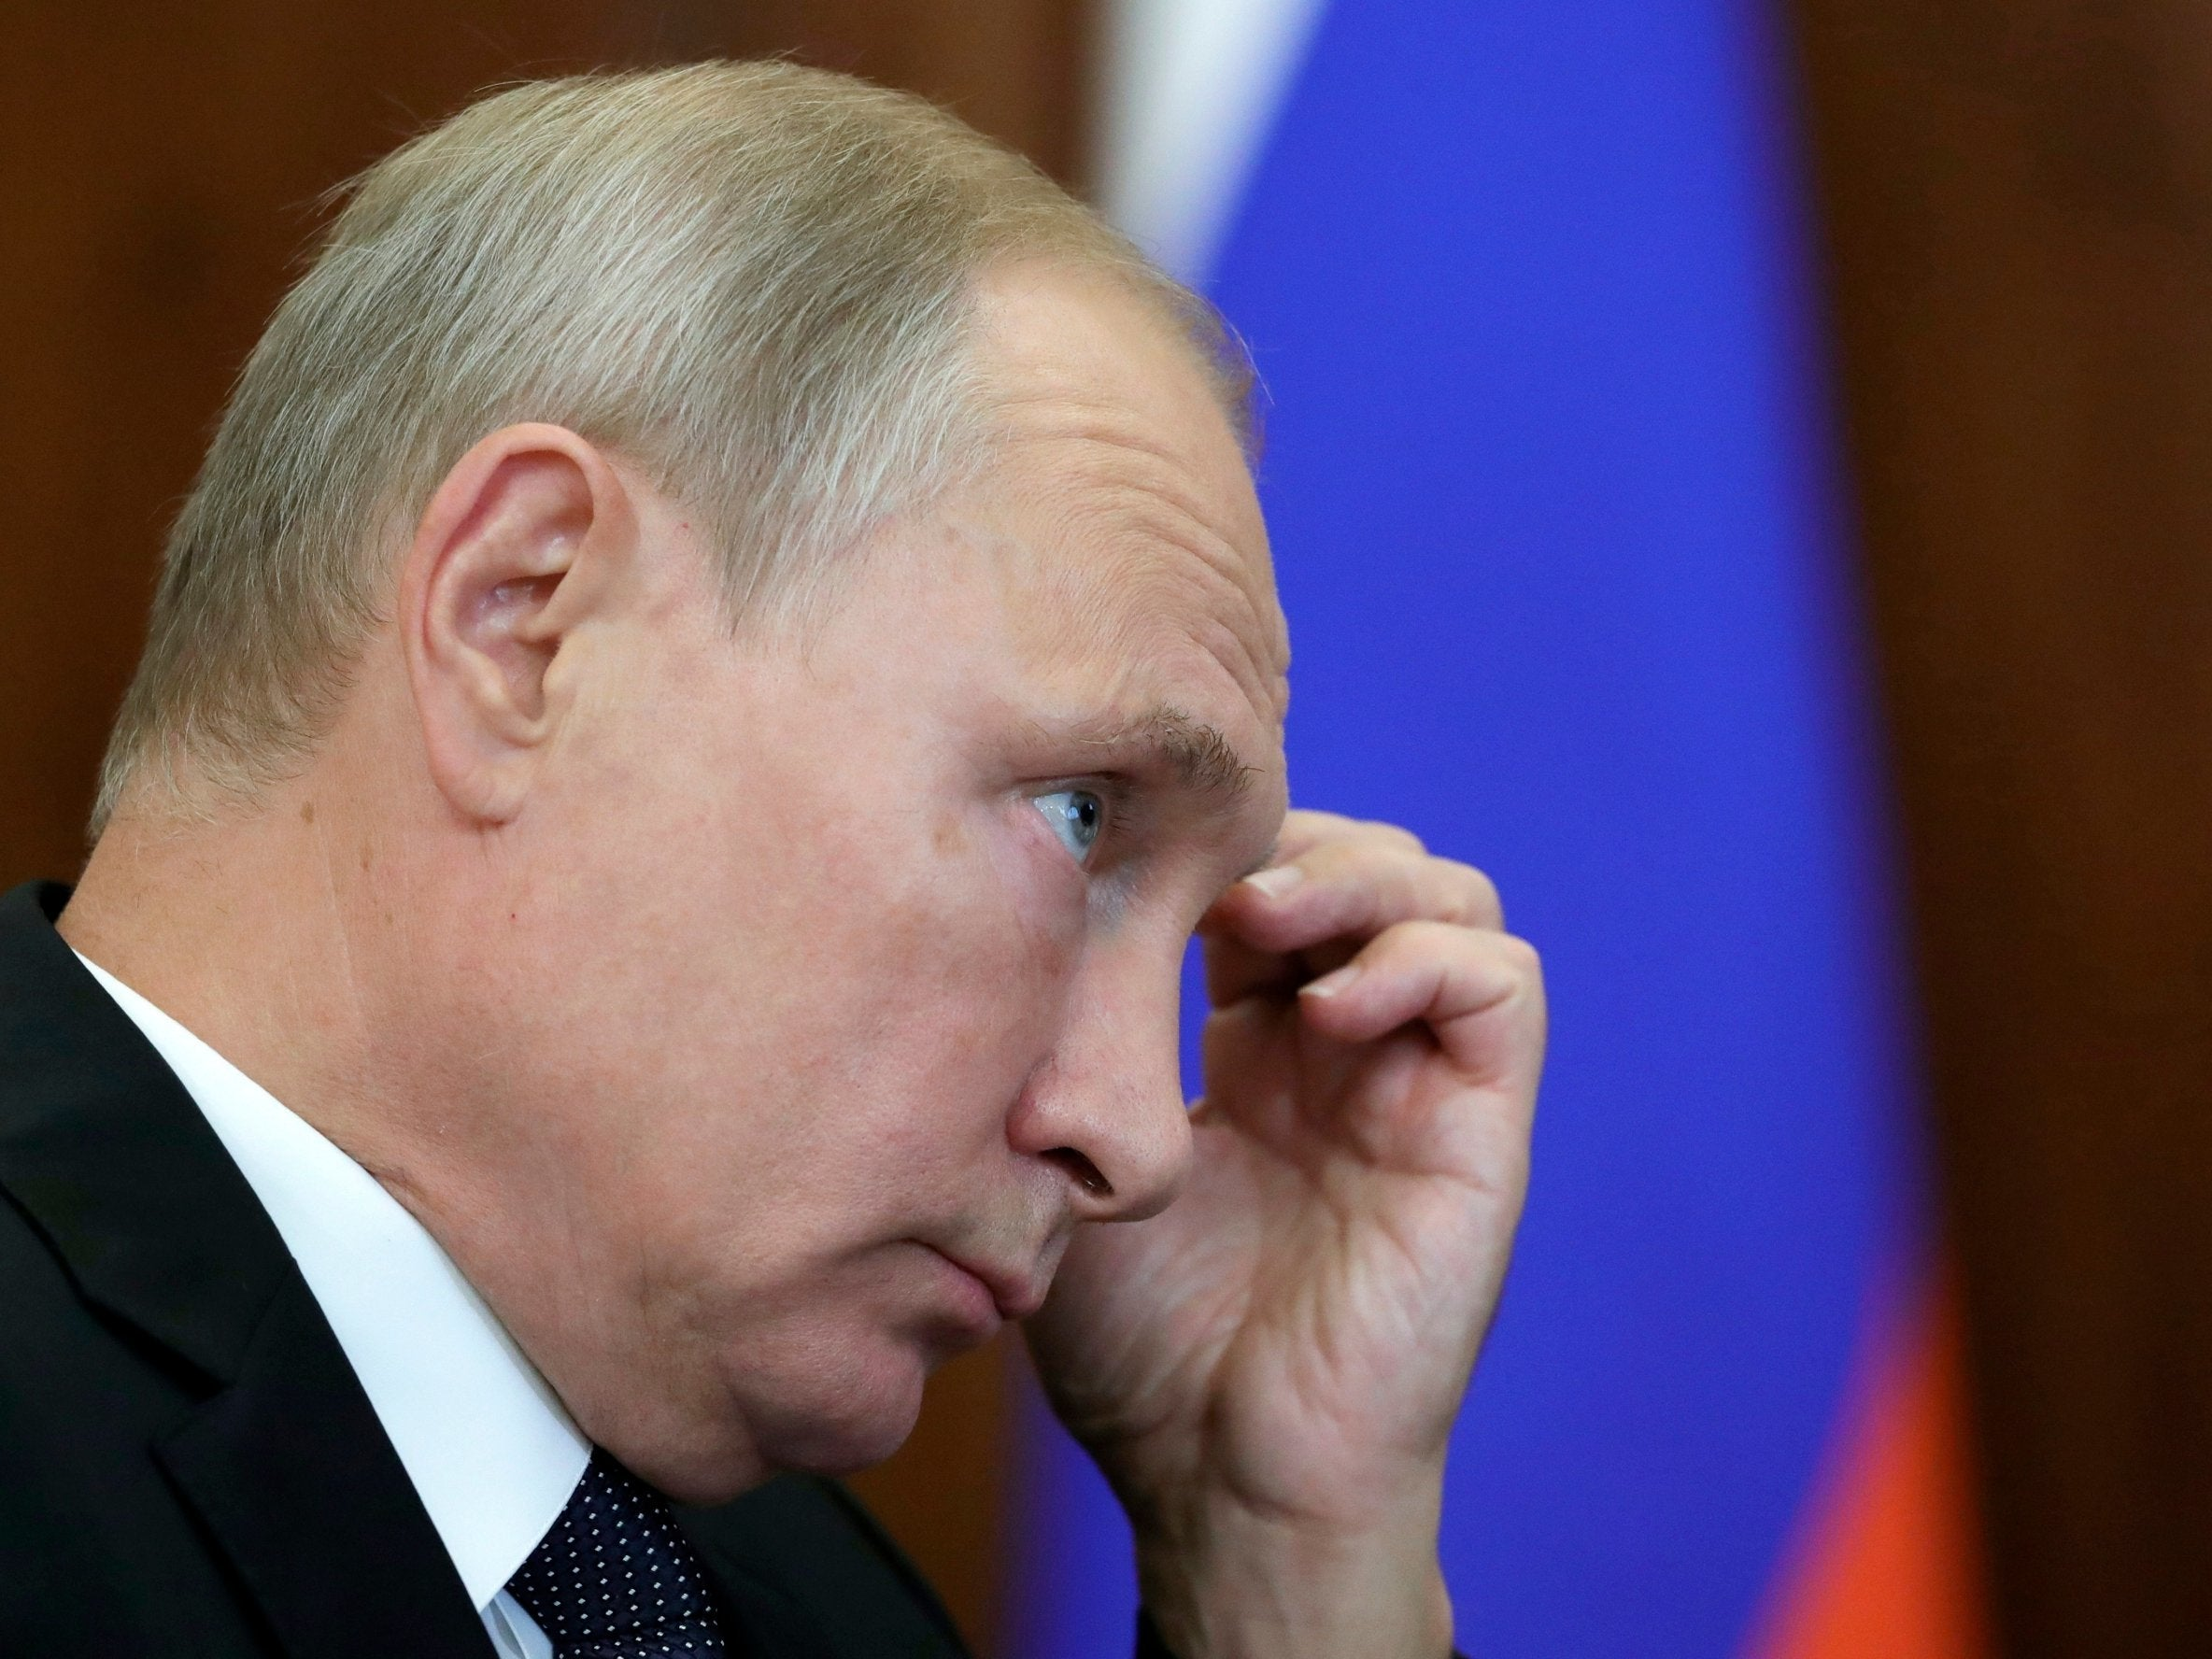 Putin proposed to develop a bill on public control